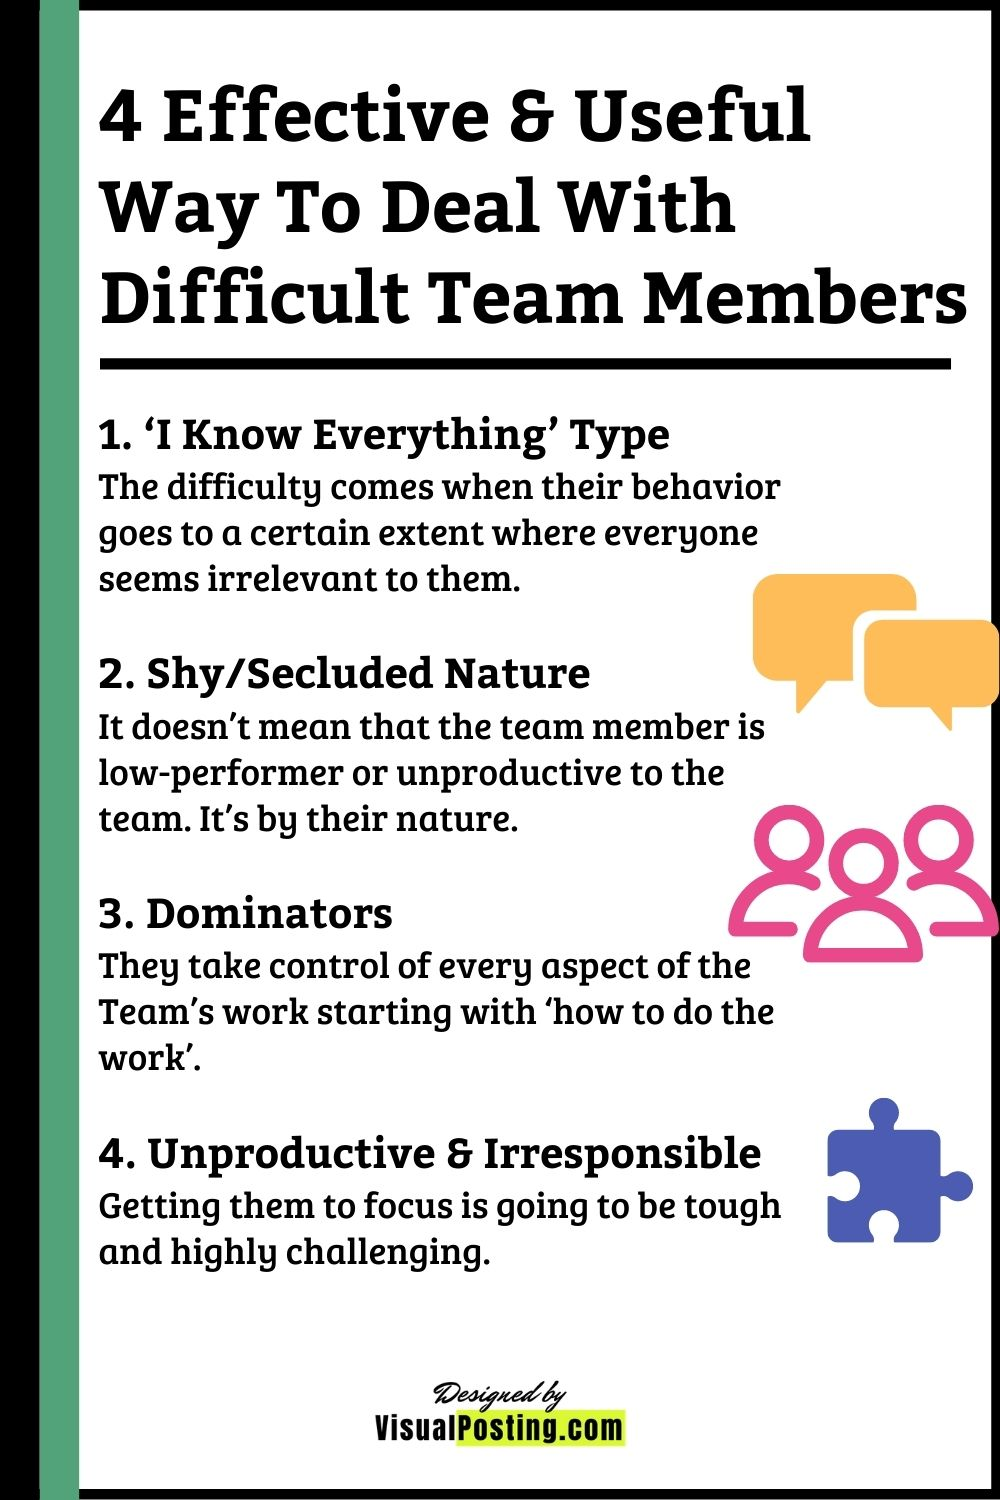 4 Effective & Useful Way To Deal With Difficult Team Members.jpg